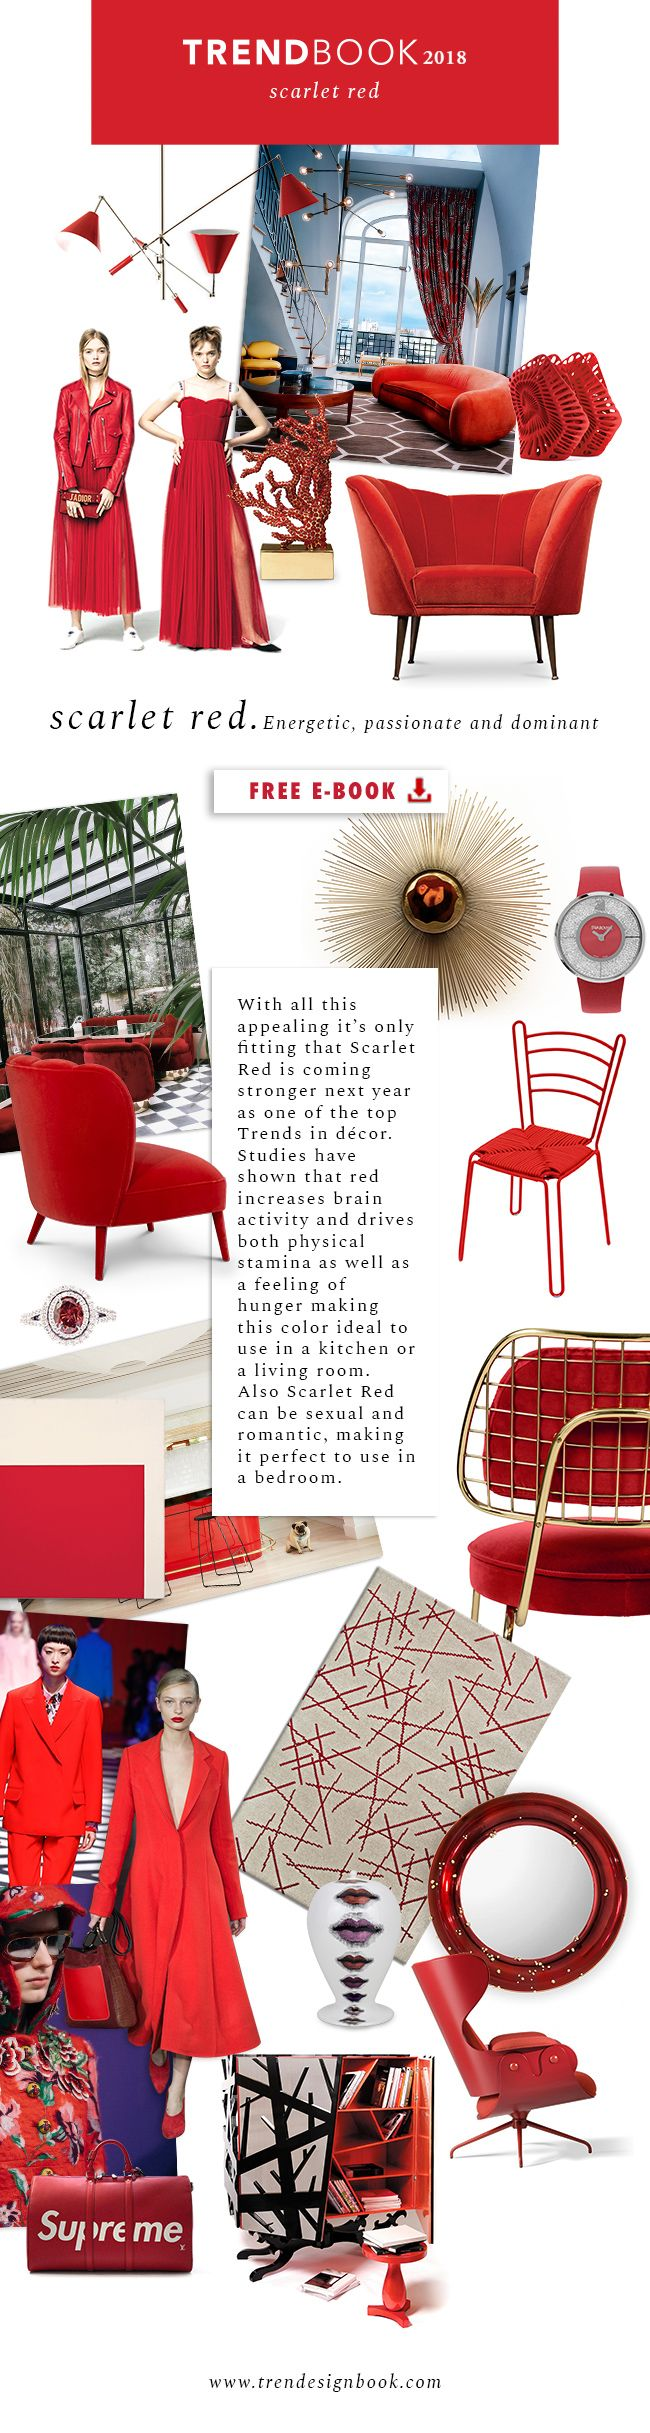 Moodboard Color Trends 2018. How to use Scarlet Red in your home decor